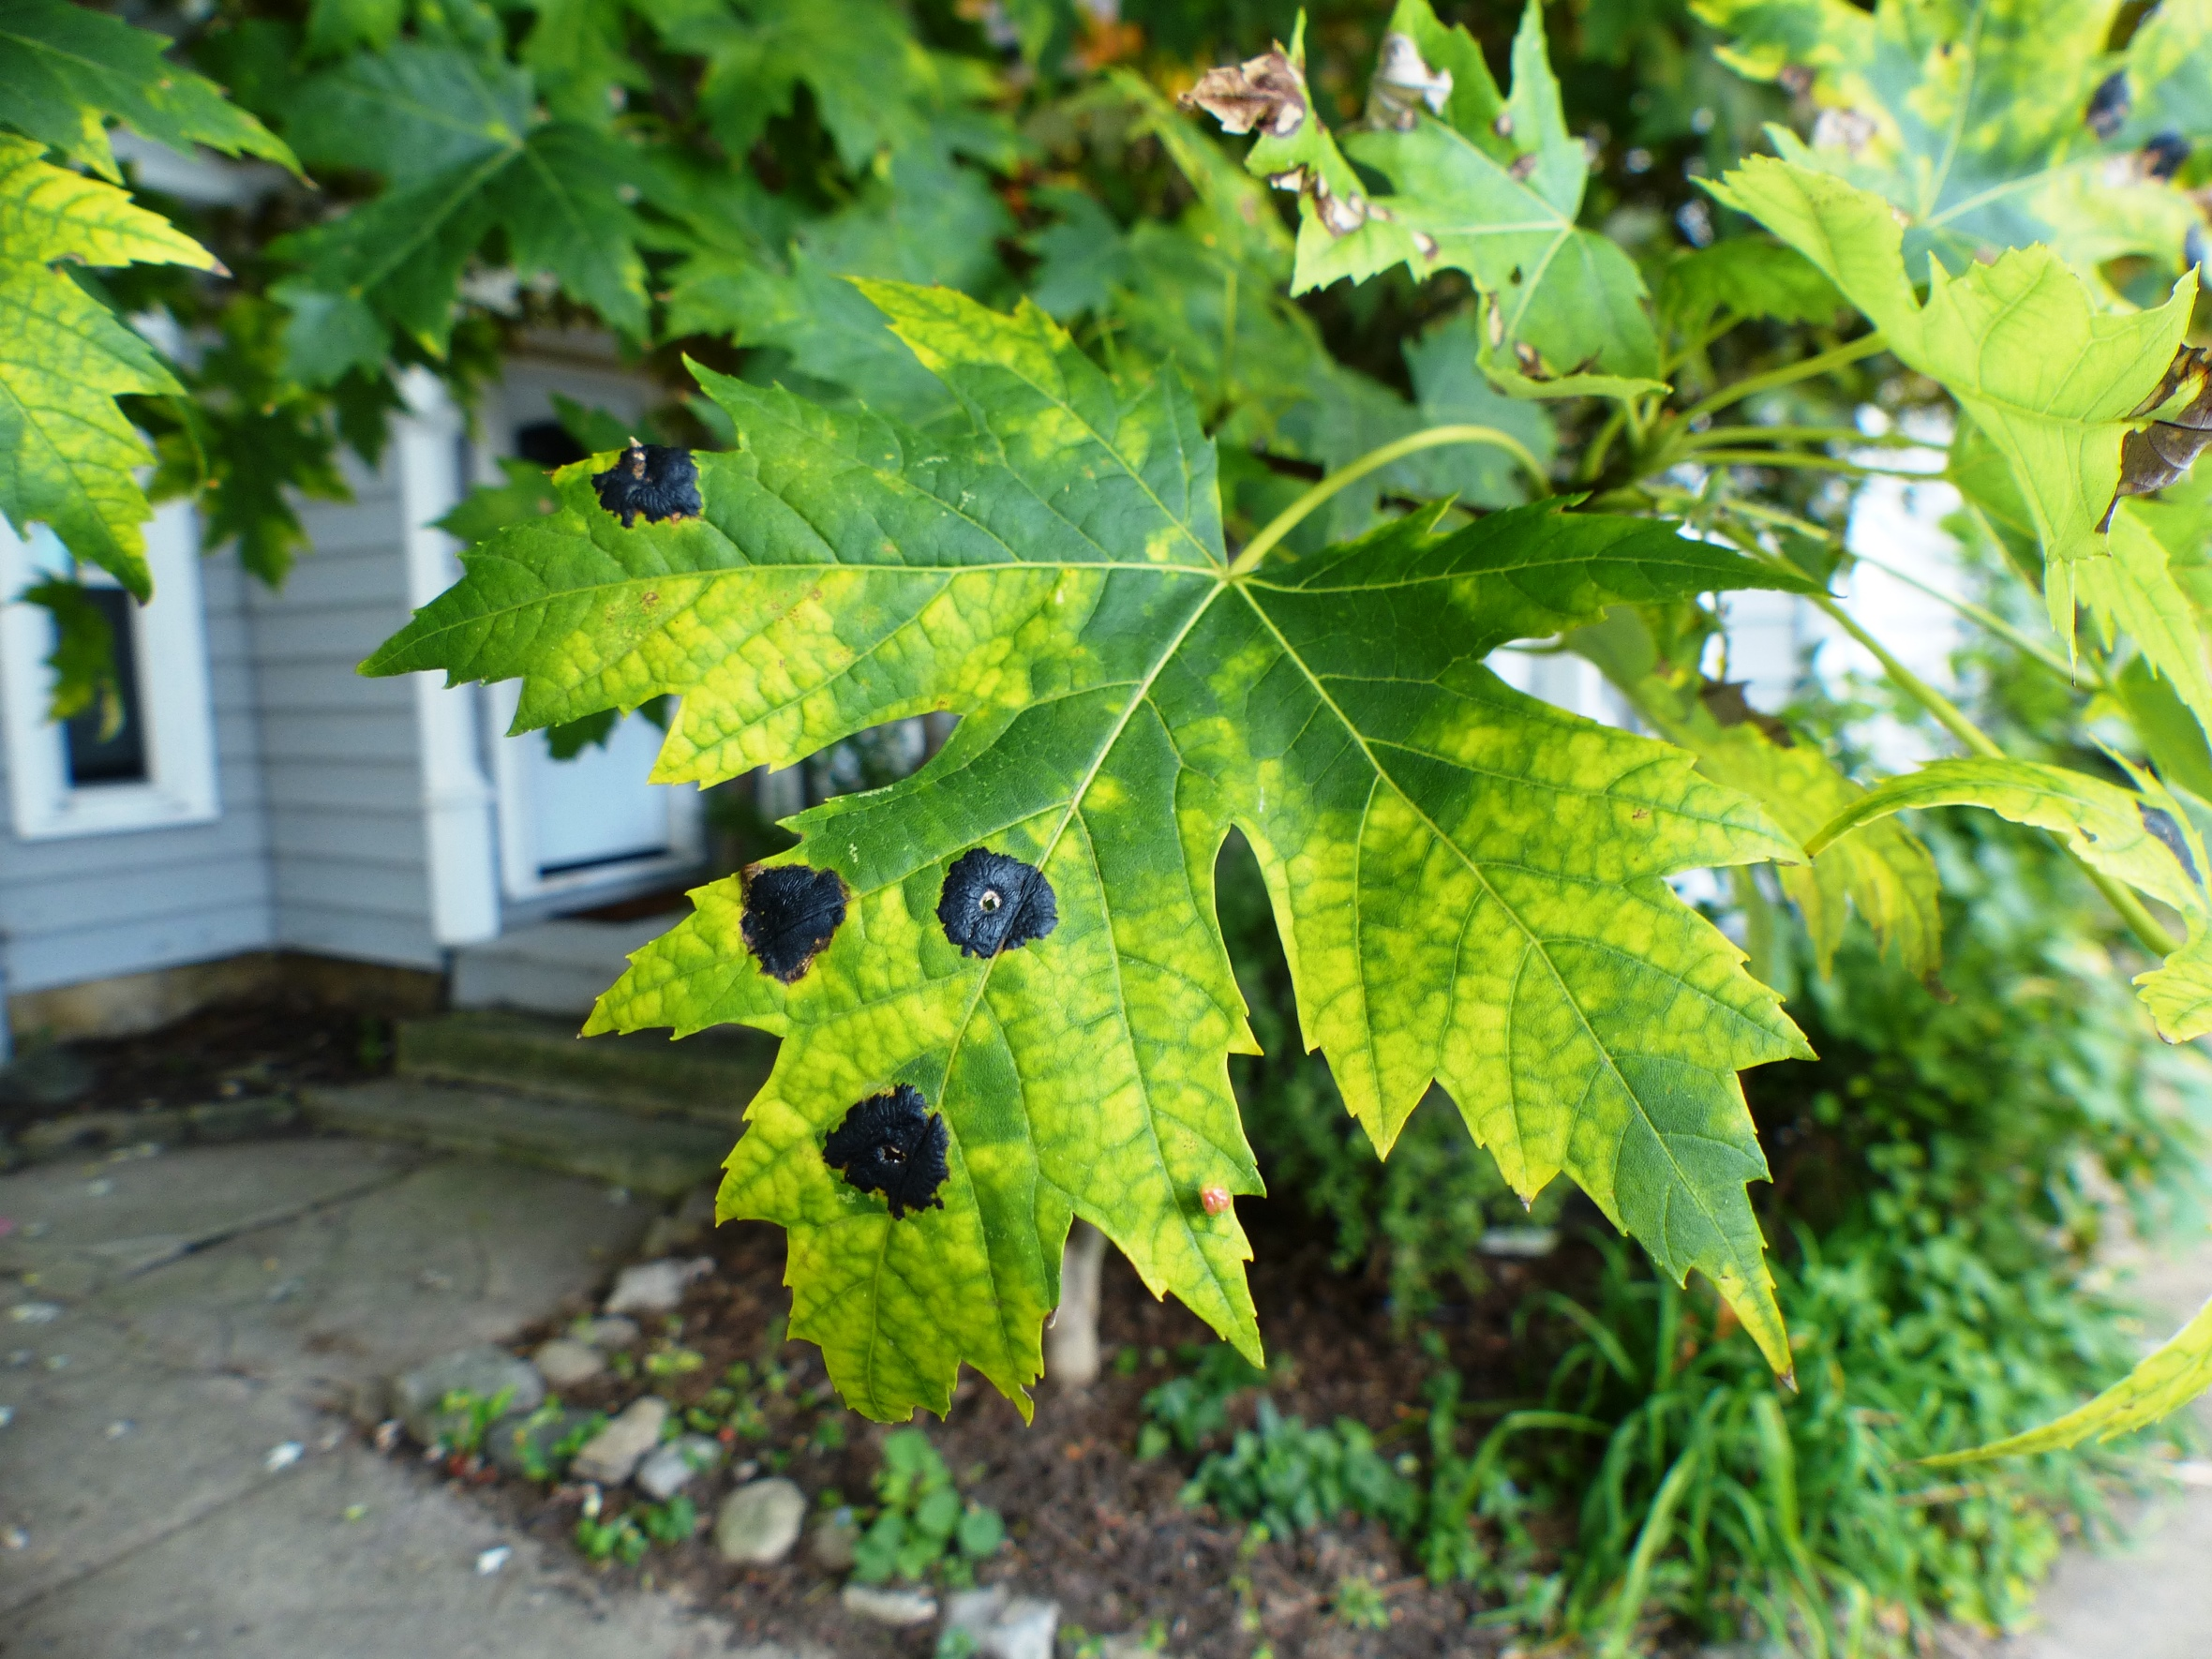 Rhytisma acerinum  on Freeman maple